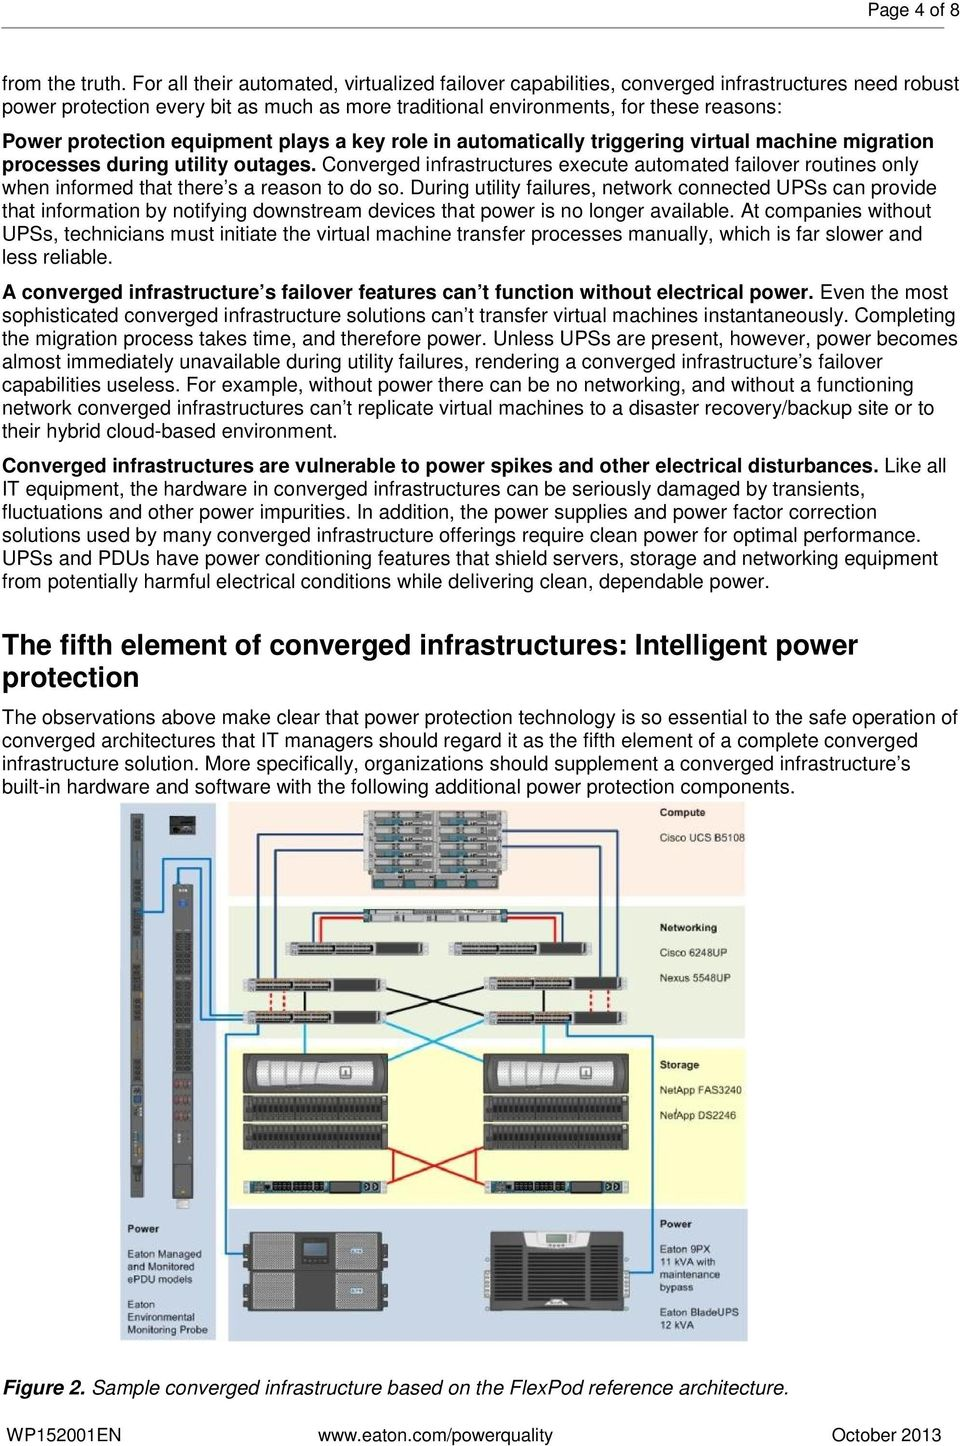 protection equipment plays a key role in automatically triggering virtual machine migration processes during utility outages.